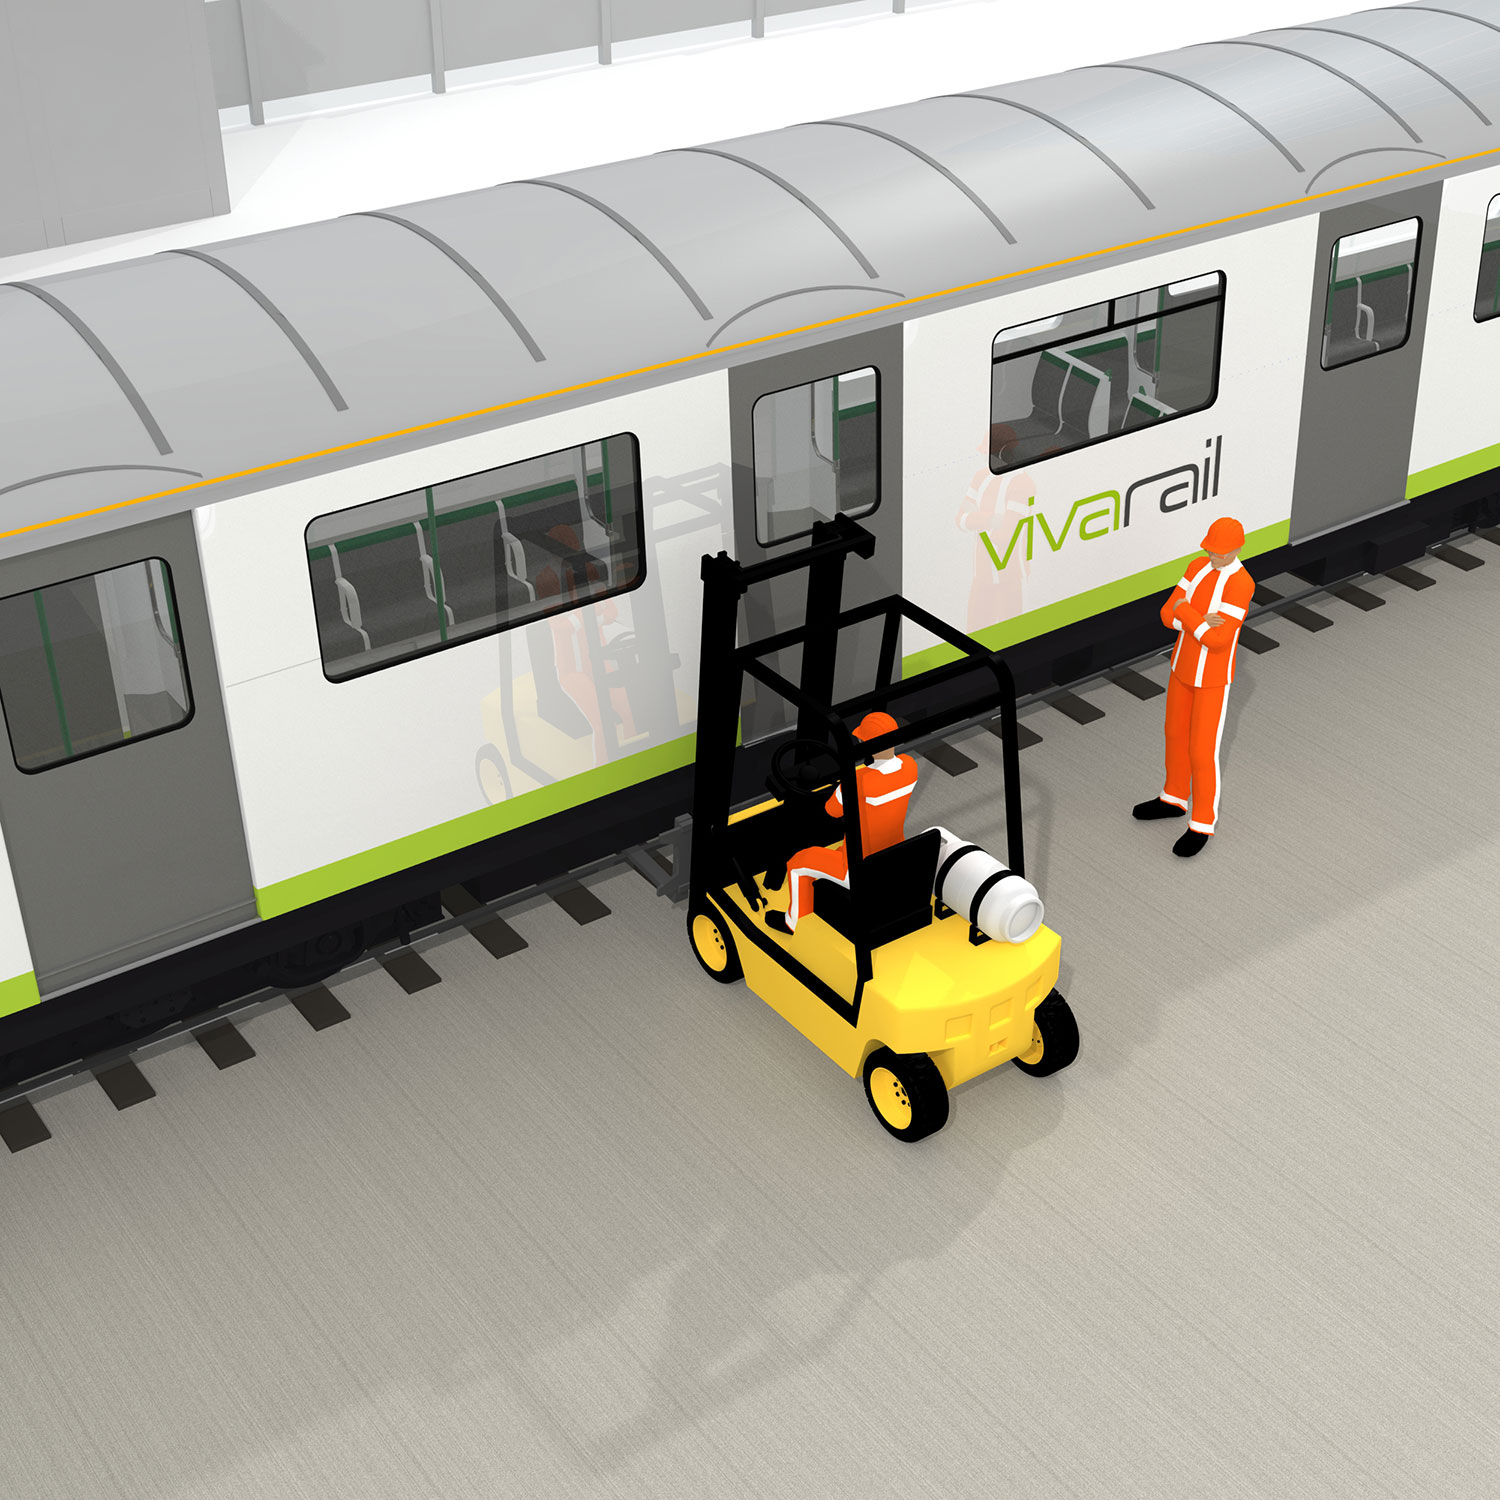 Vivarail delivering local rail solutions